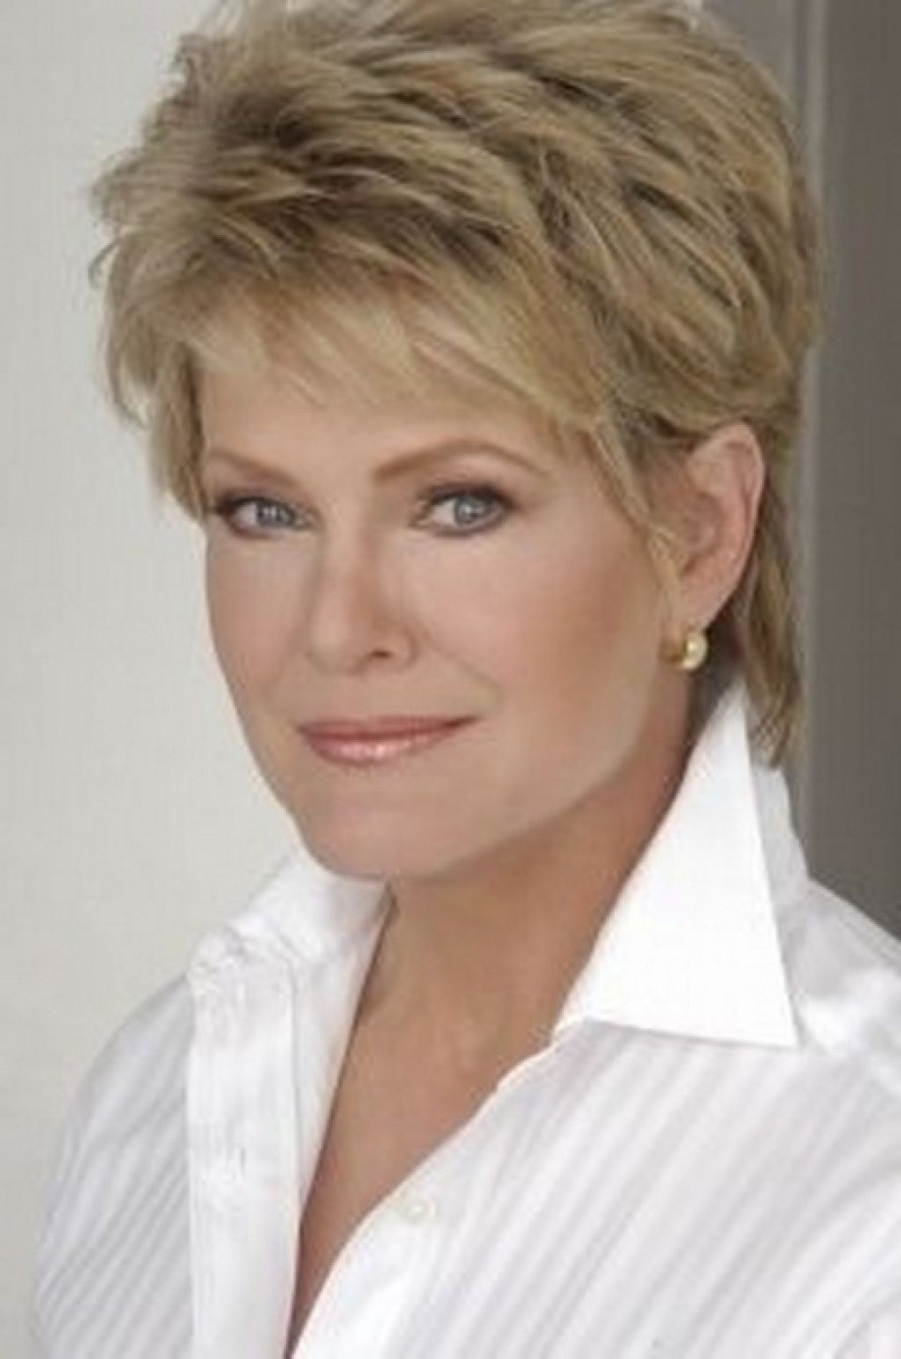 10+ Coolest Short Haircuts Women Over 50 With Picture | Hairstyles Pertaining To Short Haircuts For Women Over  (View 16 of 25)